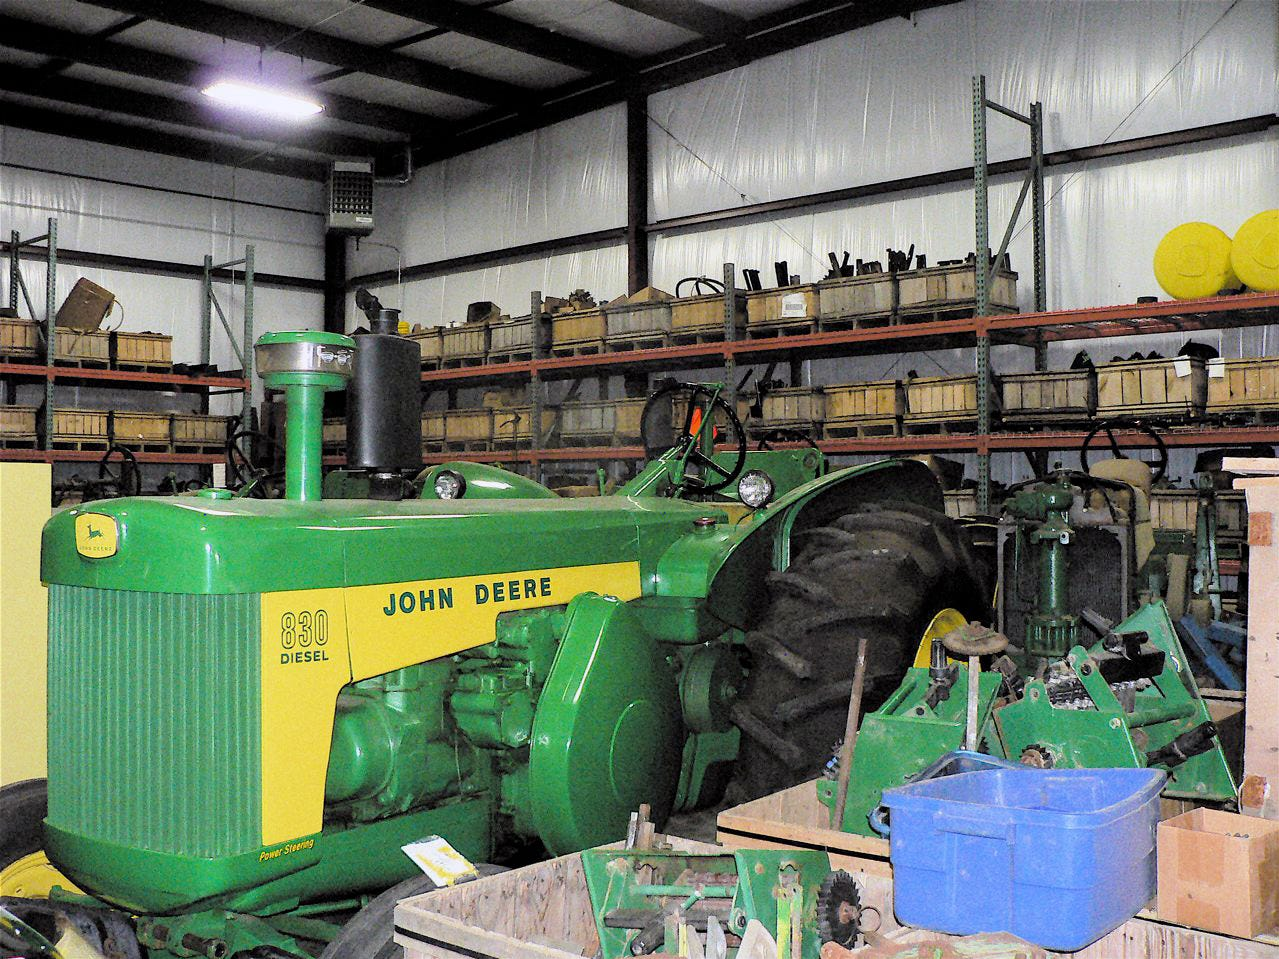 One of the dozen older John Deere tractors being stored for later display at shows.